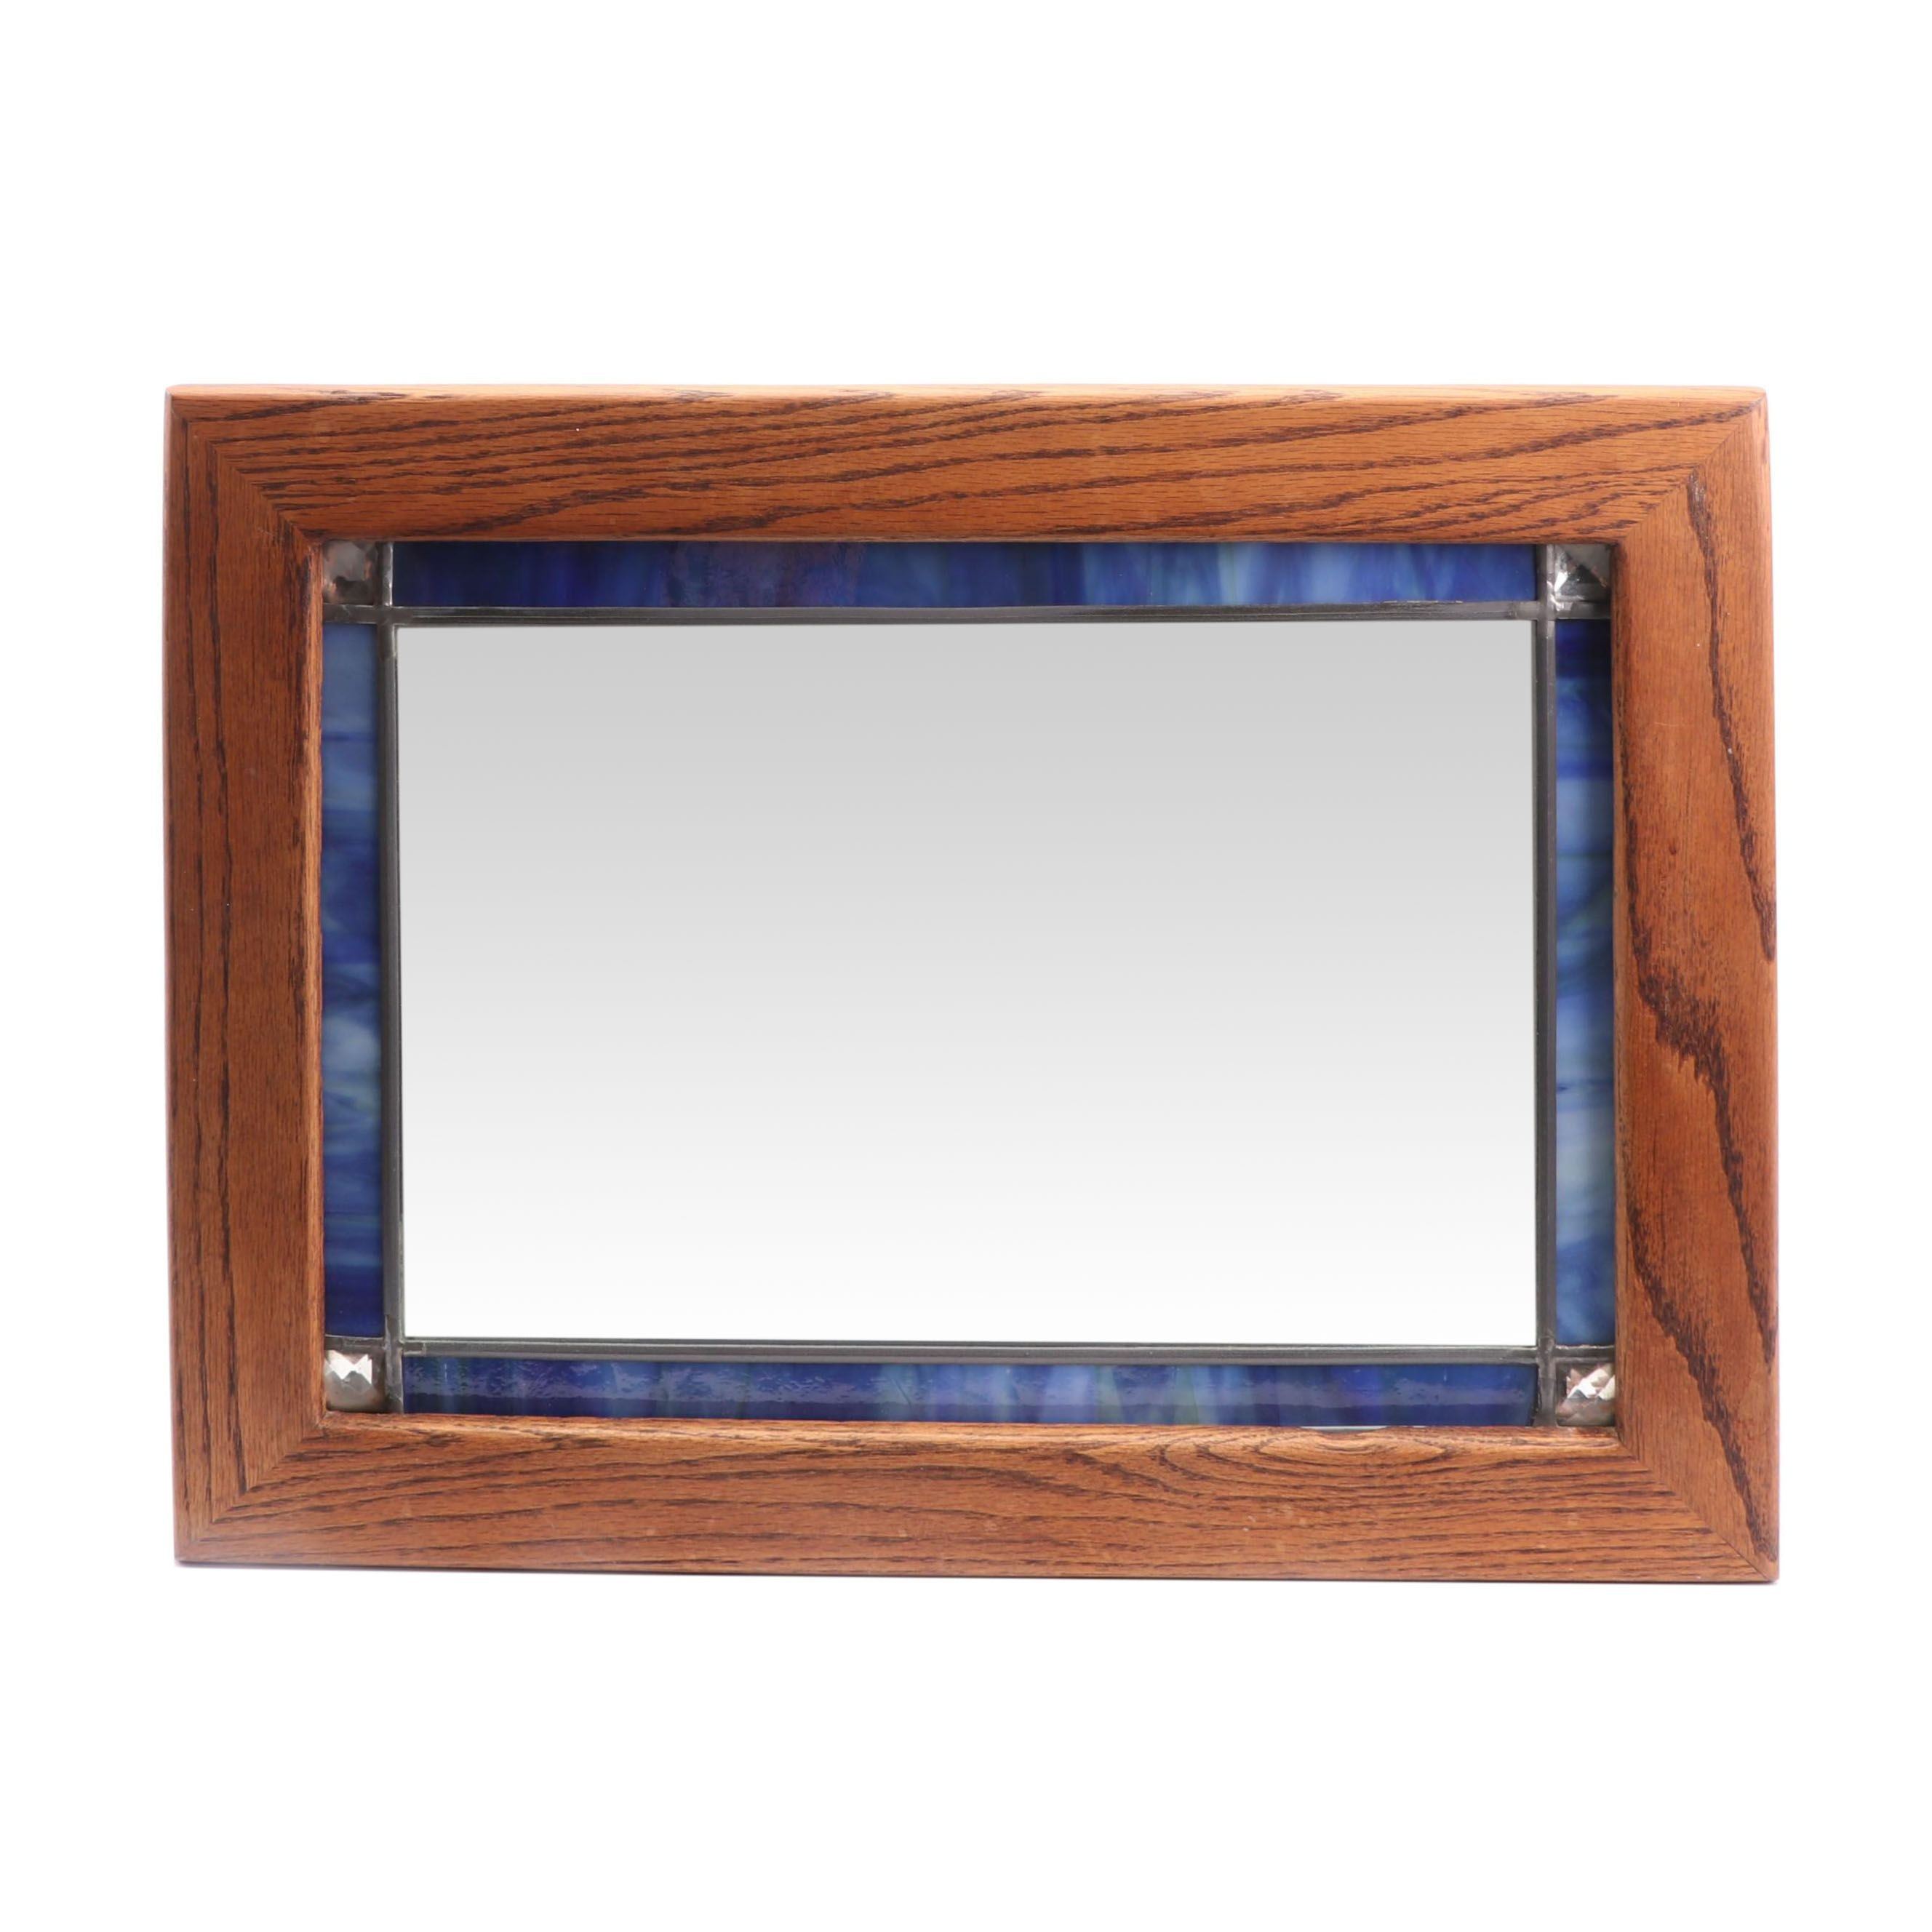 Oak and Blue Glass Frame Wall Mount Mirror, Late 20th Century